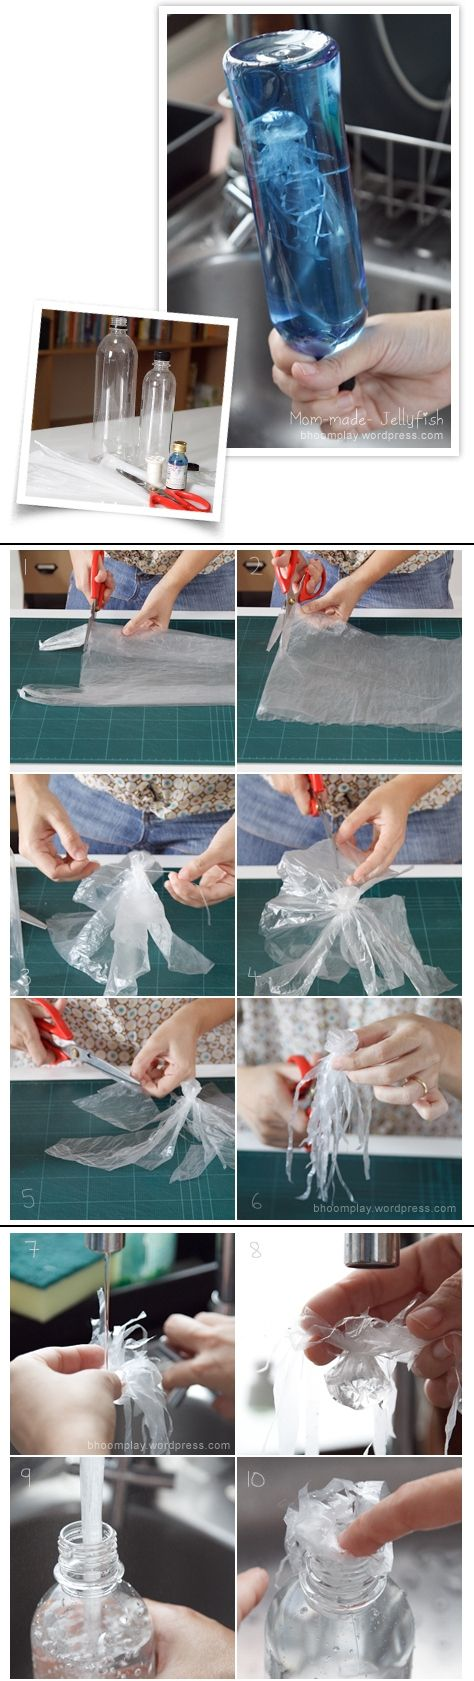 Jellyfish:plastic grocery bag/plastic water bottle/thread/food coloring. Flatten bag, cut off handle bottom. Cut along both sides to split into 2 sheets, use only 1. From center sheet, fold tiny balloon for head, tie w/thread-not too tight. Leave little hole to pour water in head. Cut from edge to head for 8-10 tentacles. Cut ea again into 3-4 small strings. Trim into long short pcs. Put water in head. Leave some air inside so floats. Fill bottle, add jellyfish blue food coloring. Recap.